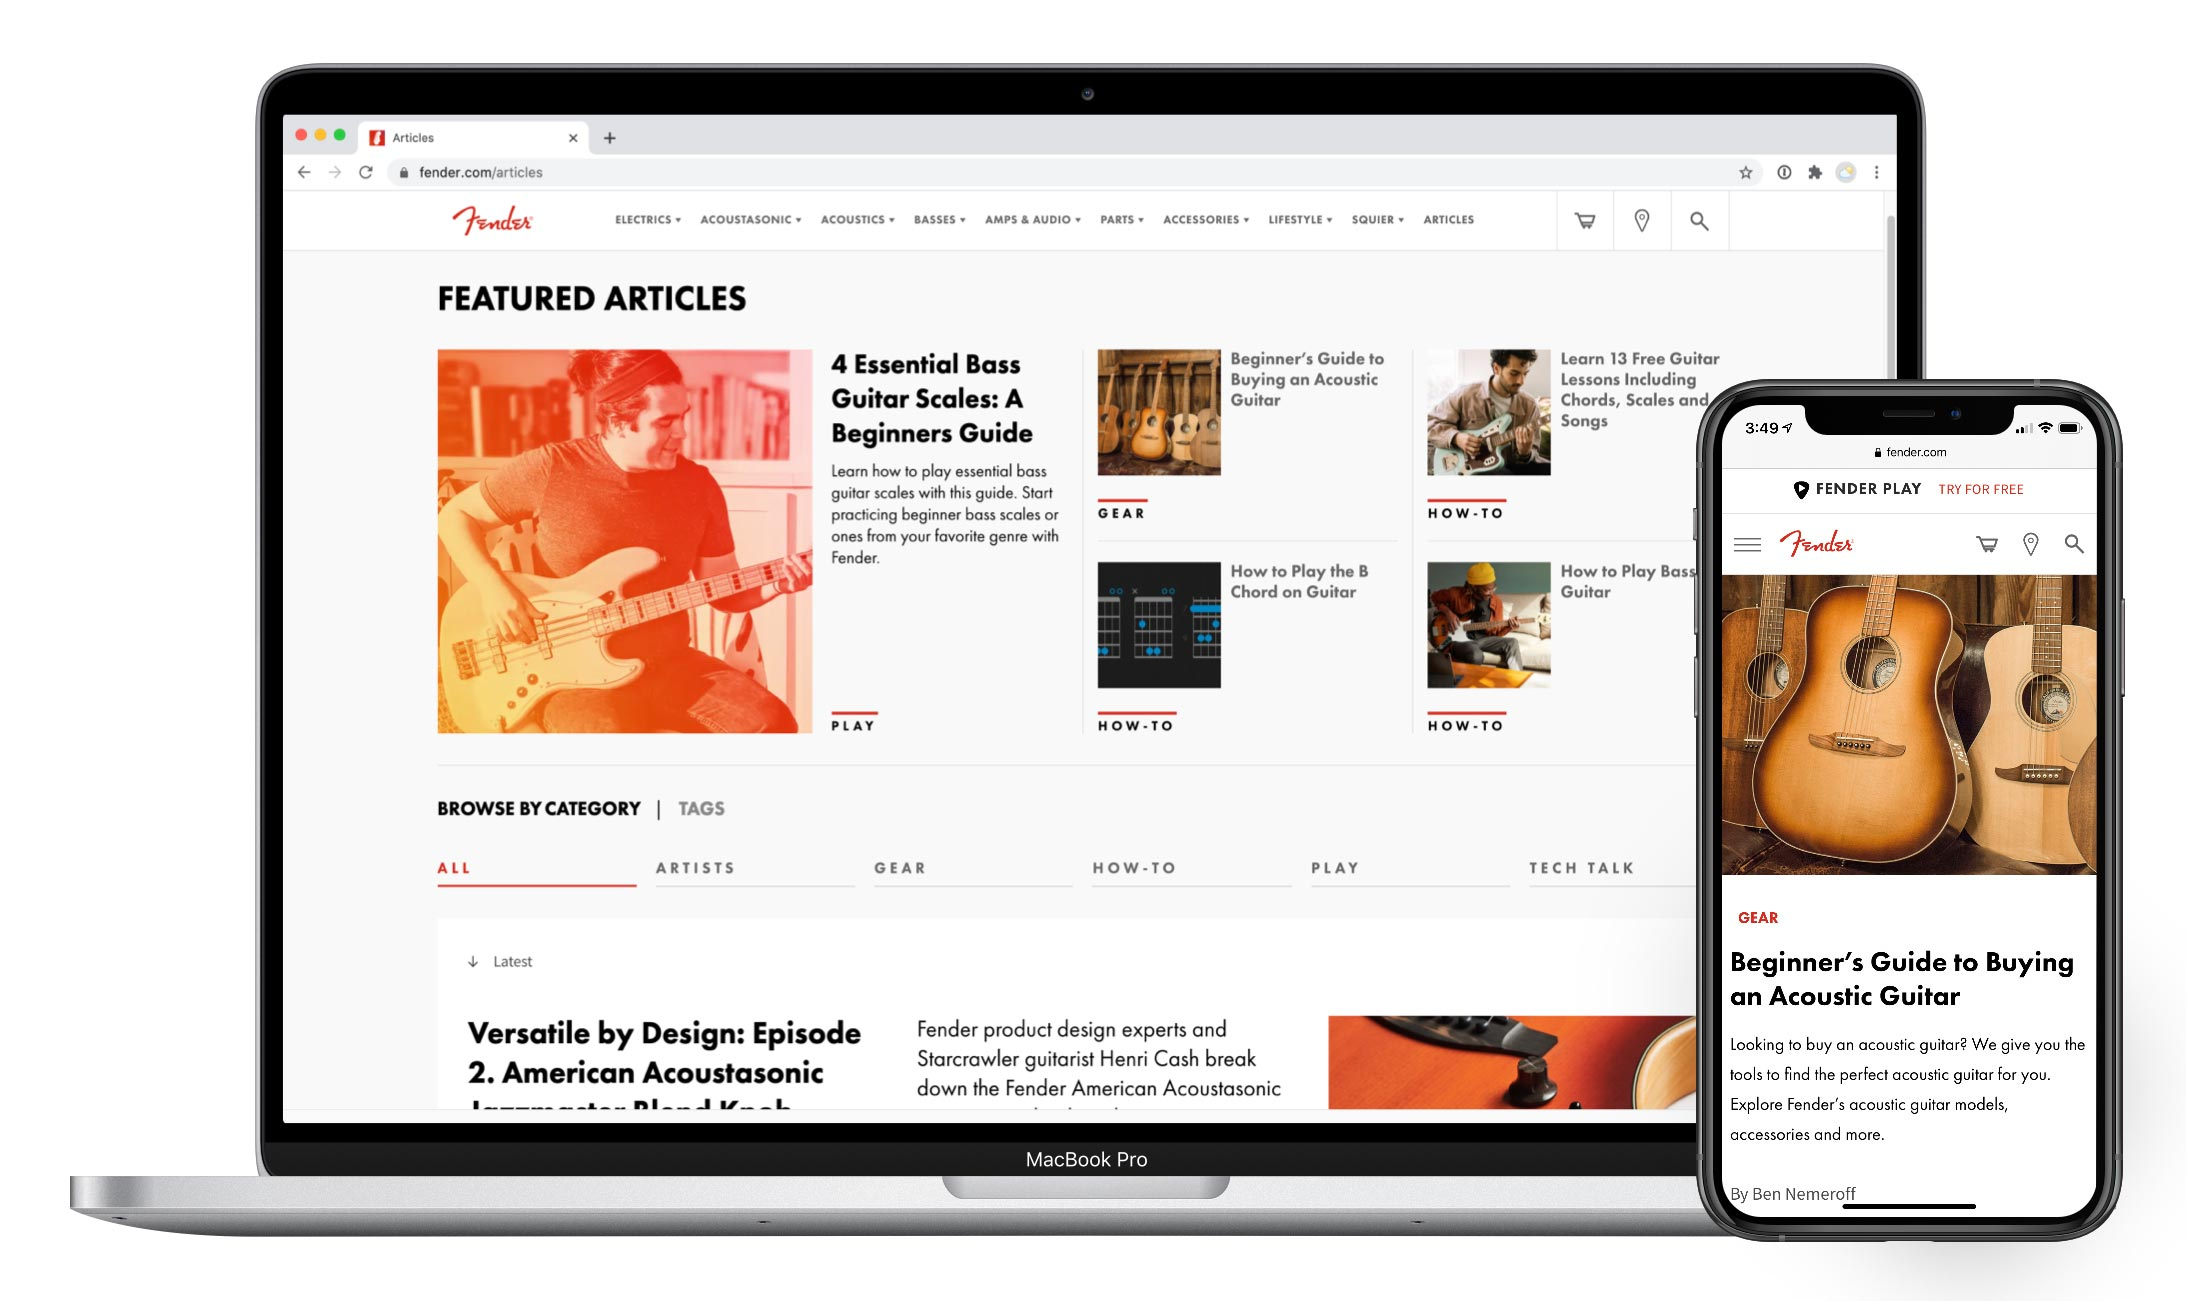 Articles pages on Fender.com